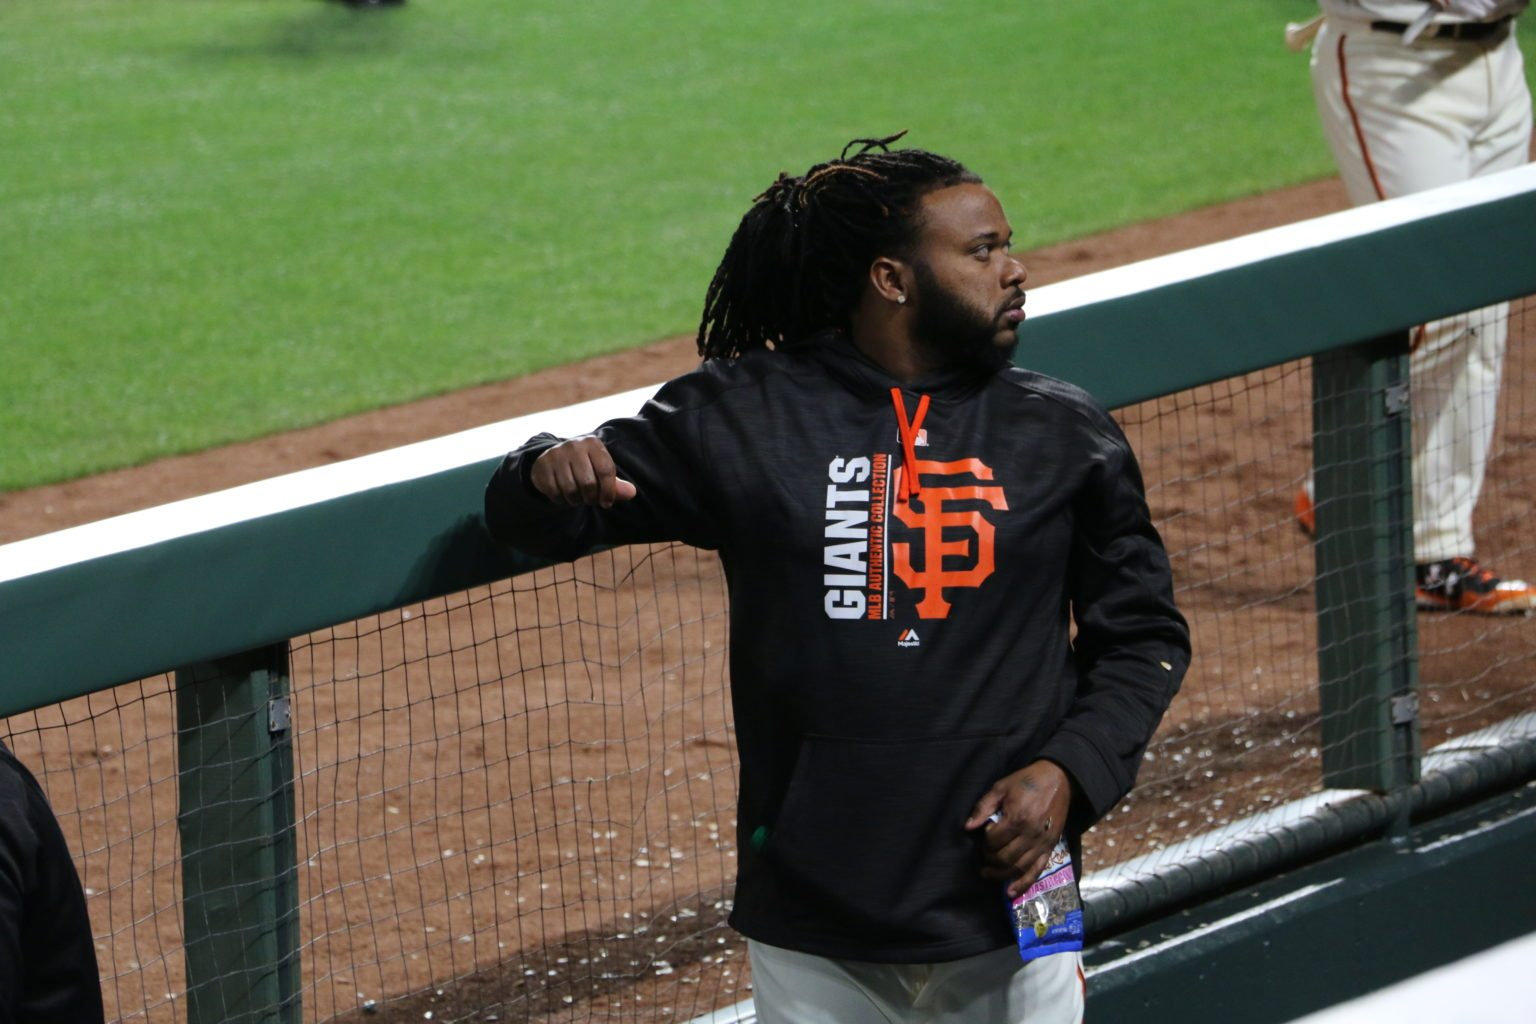 Johnny Cueto gave up five runs on 10 hits in five innings on Thursday. (Jacob C. Palmer/S.F. Examiner)